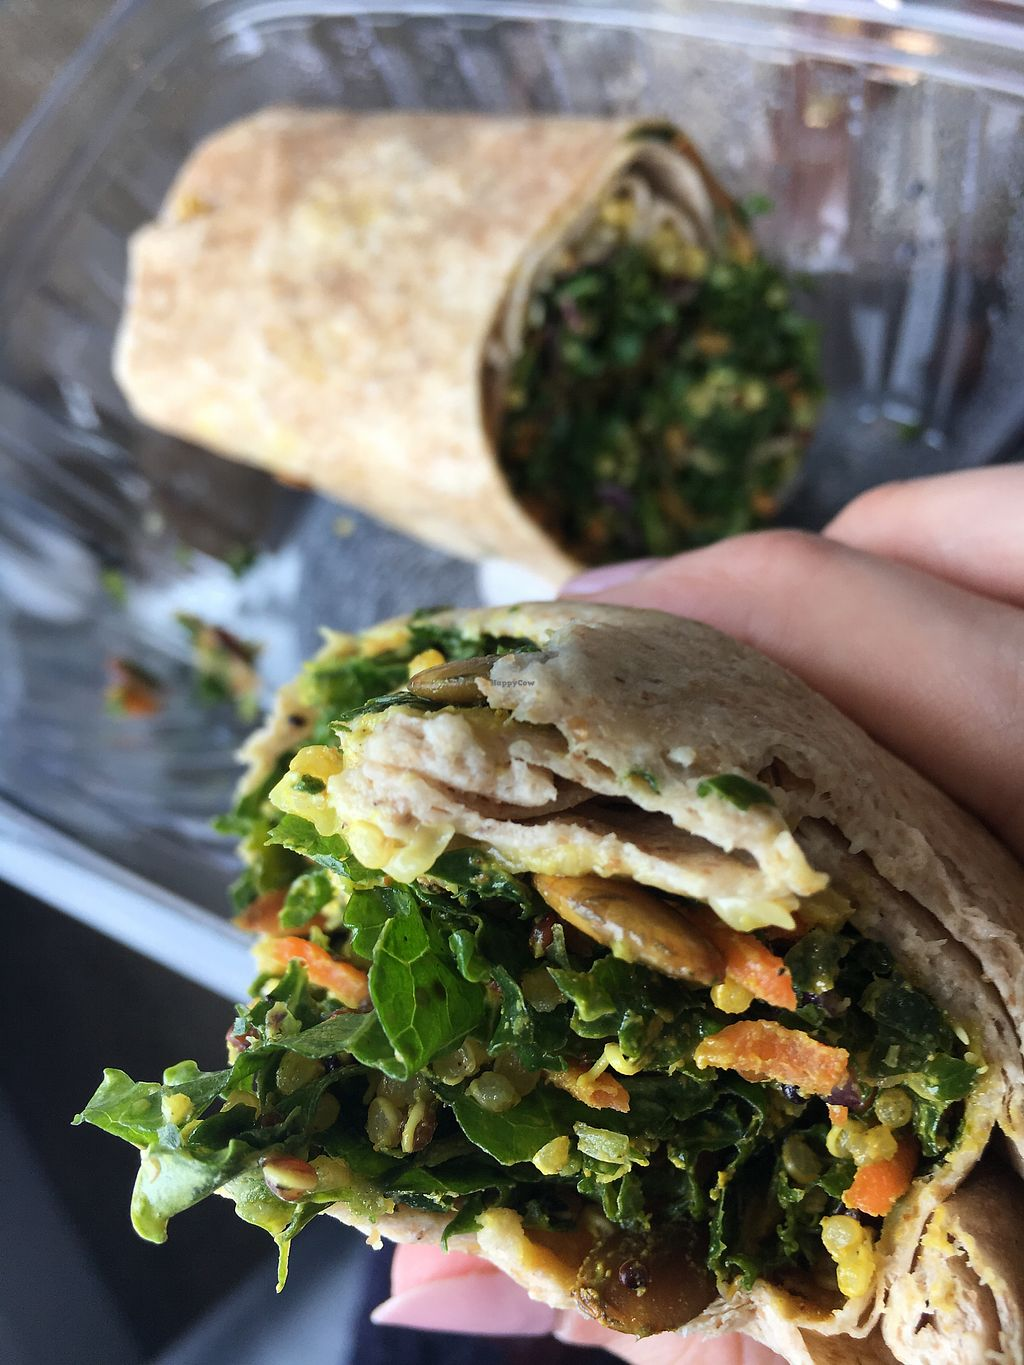 """Photo of SFO - Napa Farms Market - T2  by <a href=""""/members/profile/kittykate"""">kittykate</a> <br/>Pumpkin seed wrap with hummus <br/> January 7, 2018  - <a href='/contact/abuse/image/84928/344068'>Report</a>"""